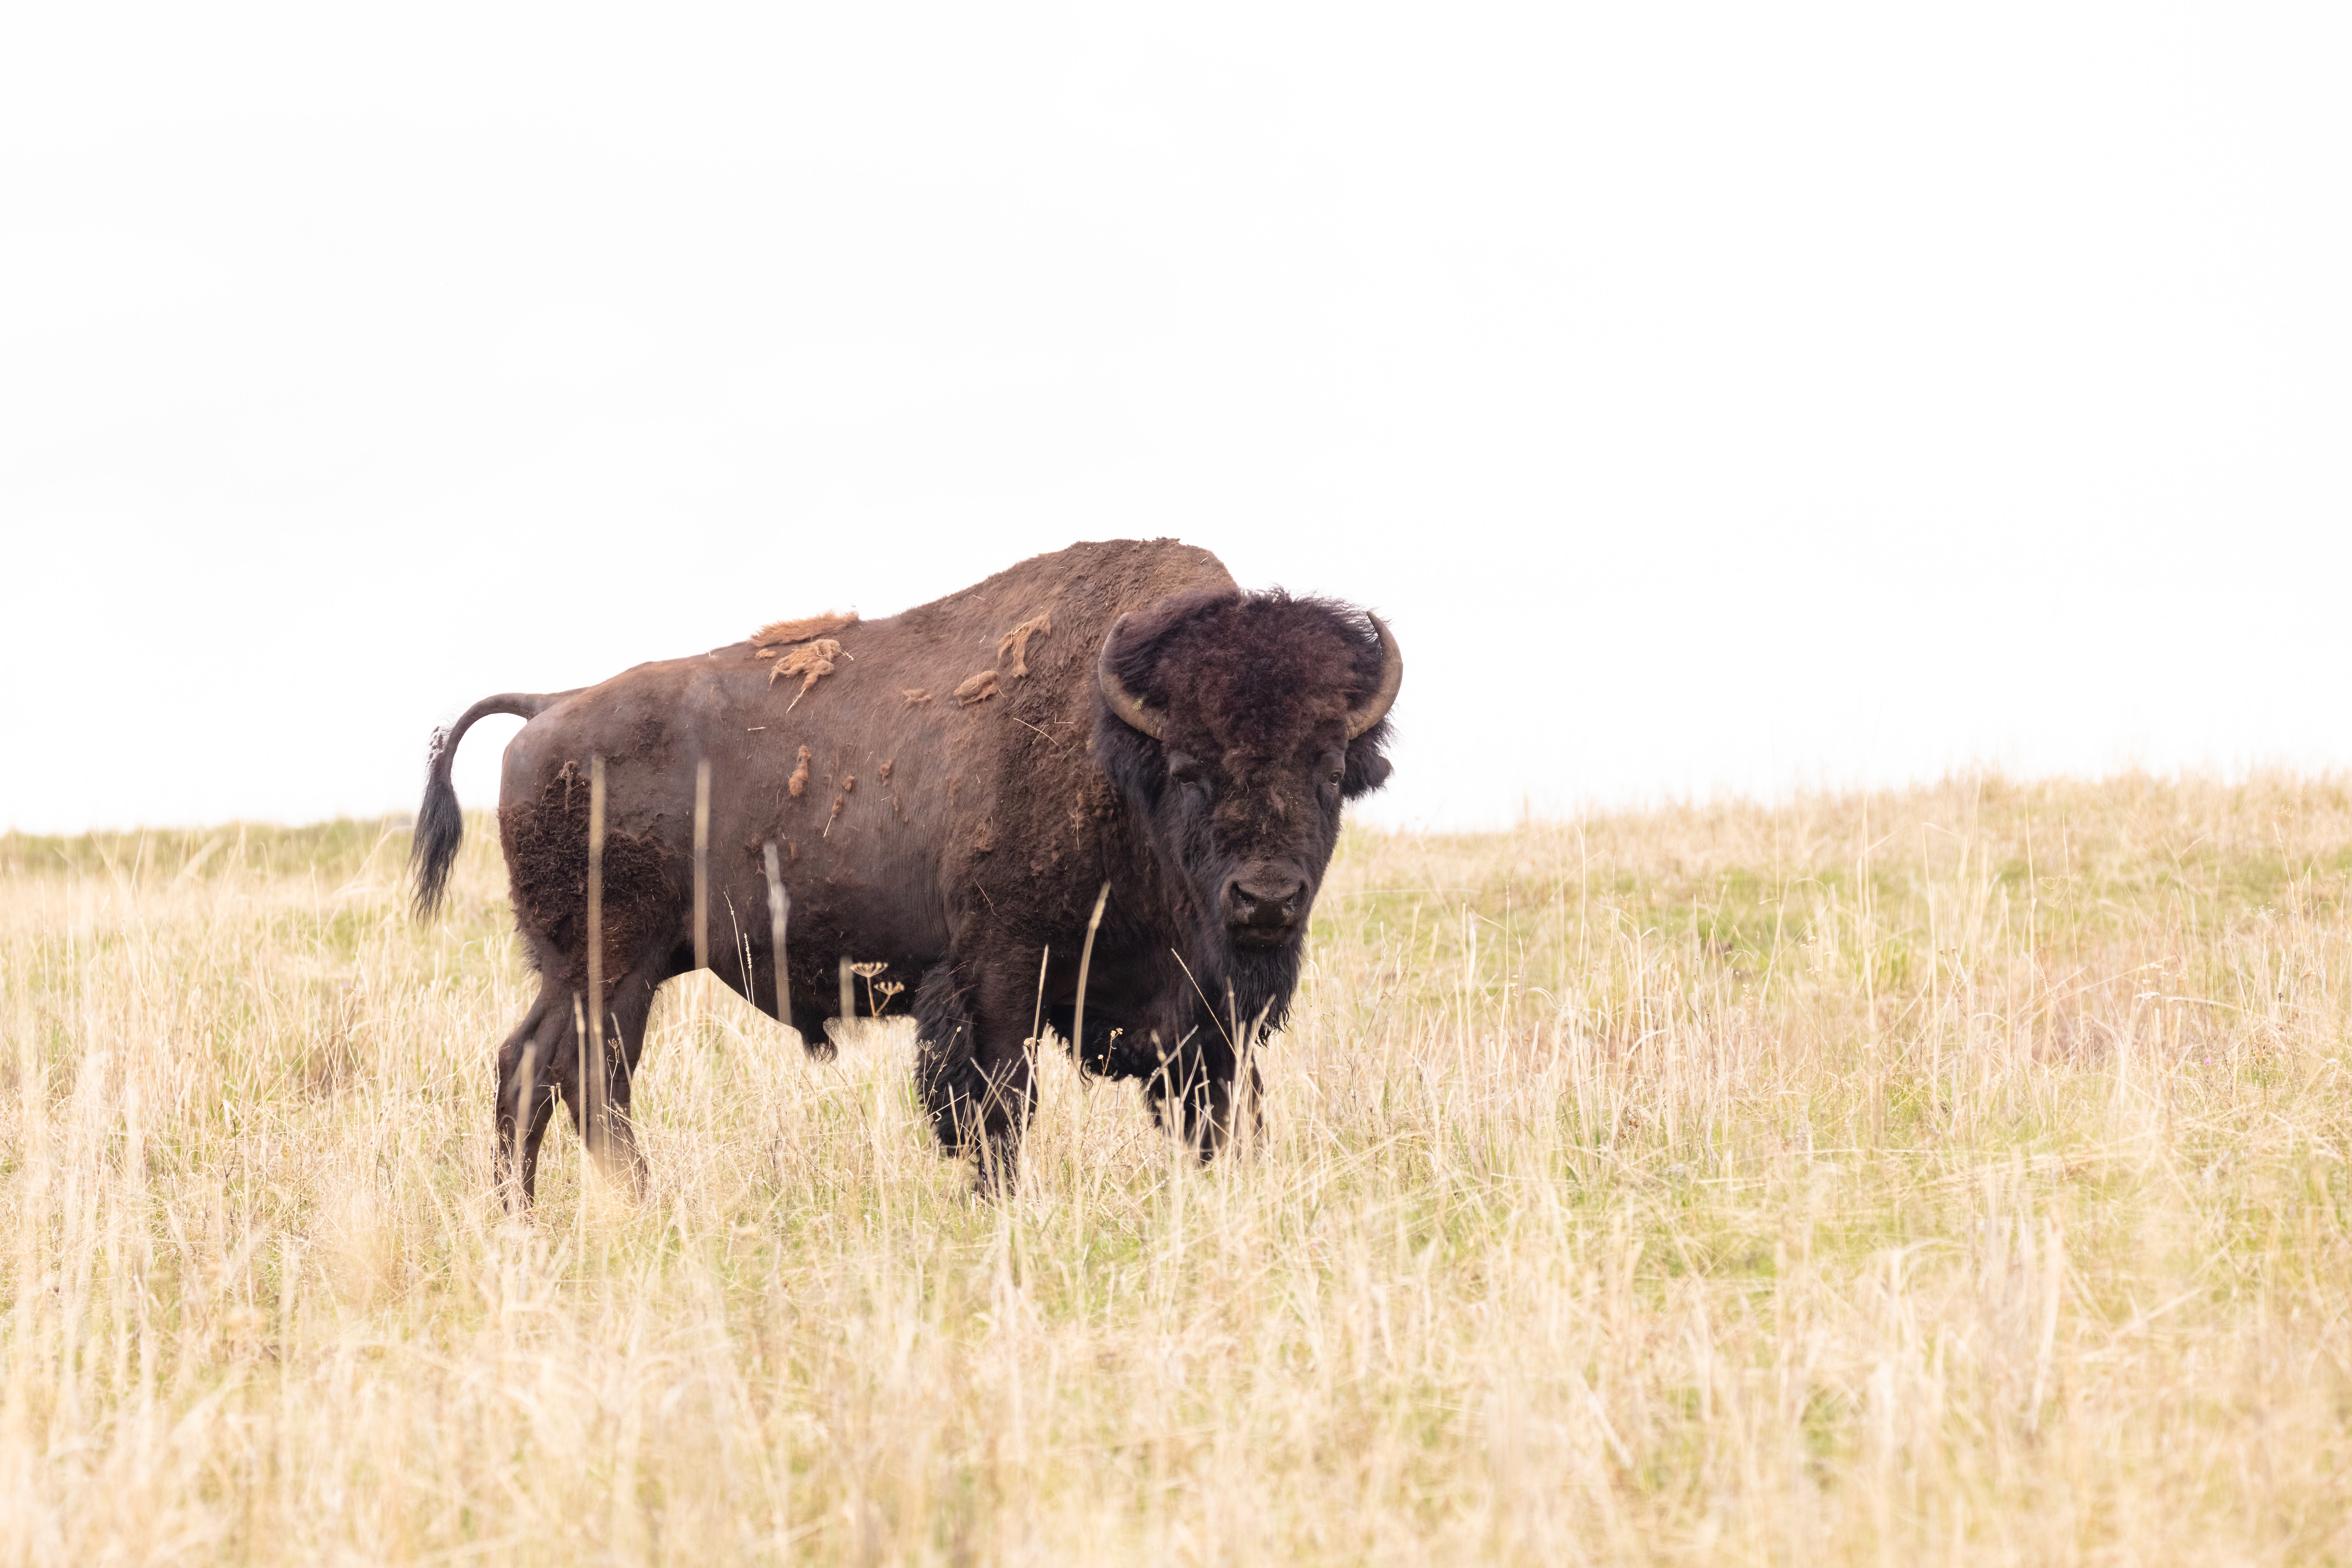 A bison standing in a field looking at the camera.